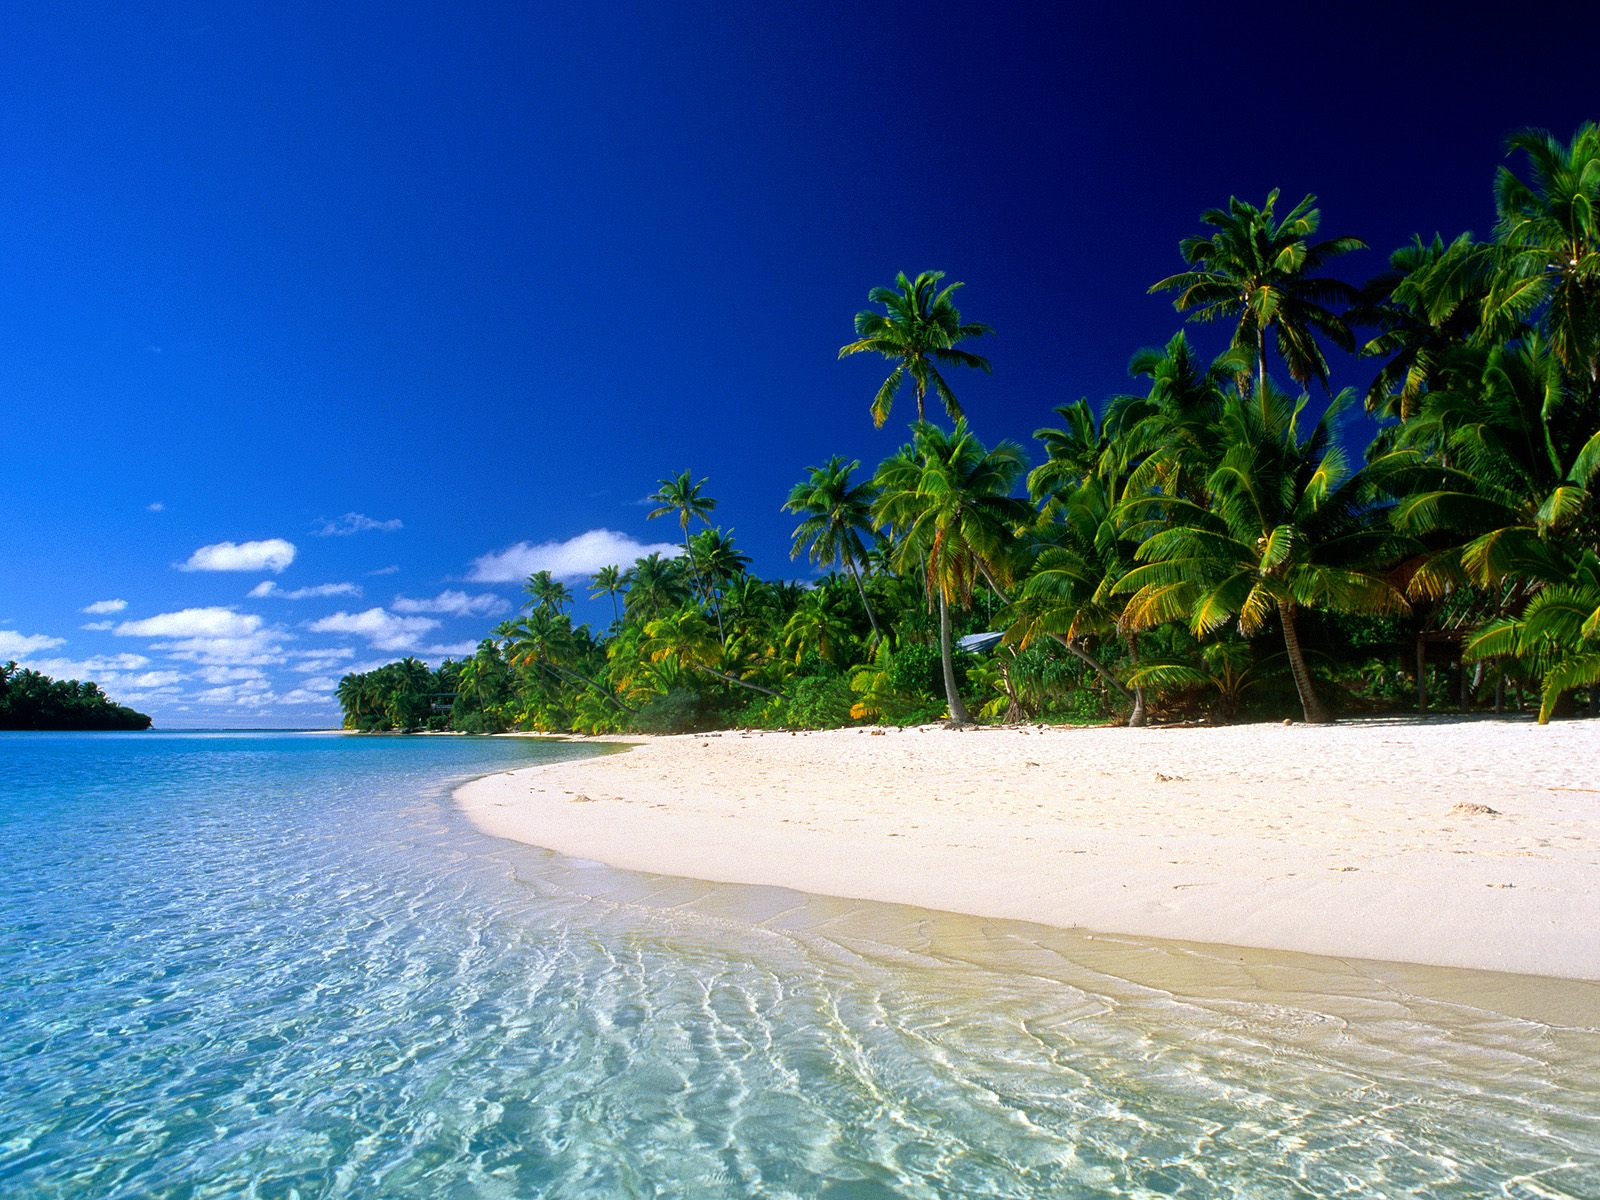 Wallpaper Of Beach A Quiet Beach In Cook Islands Wallpaper 1600x1200